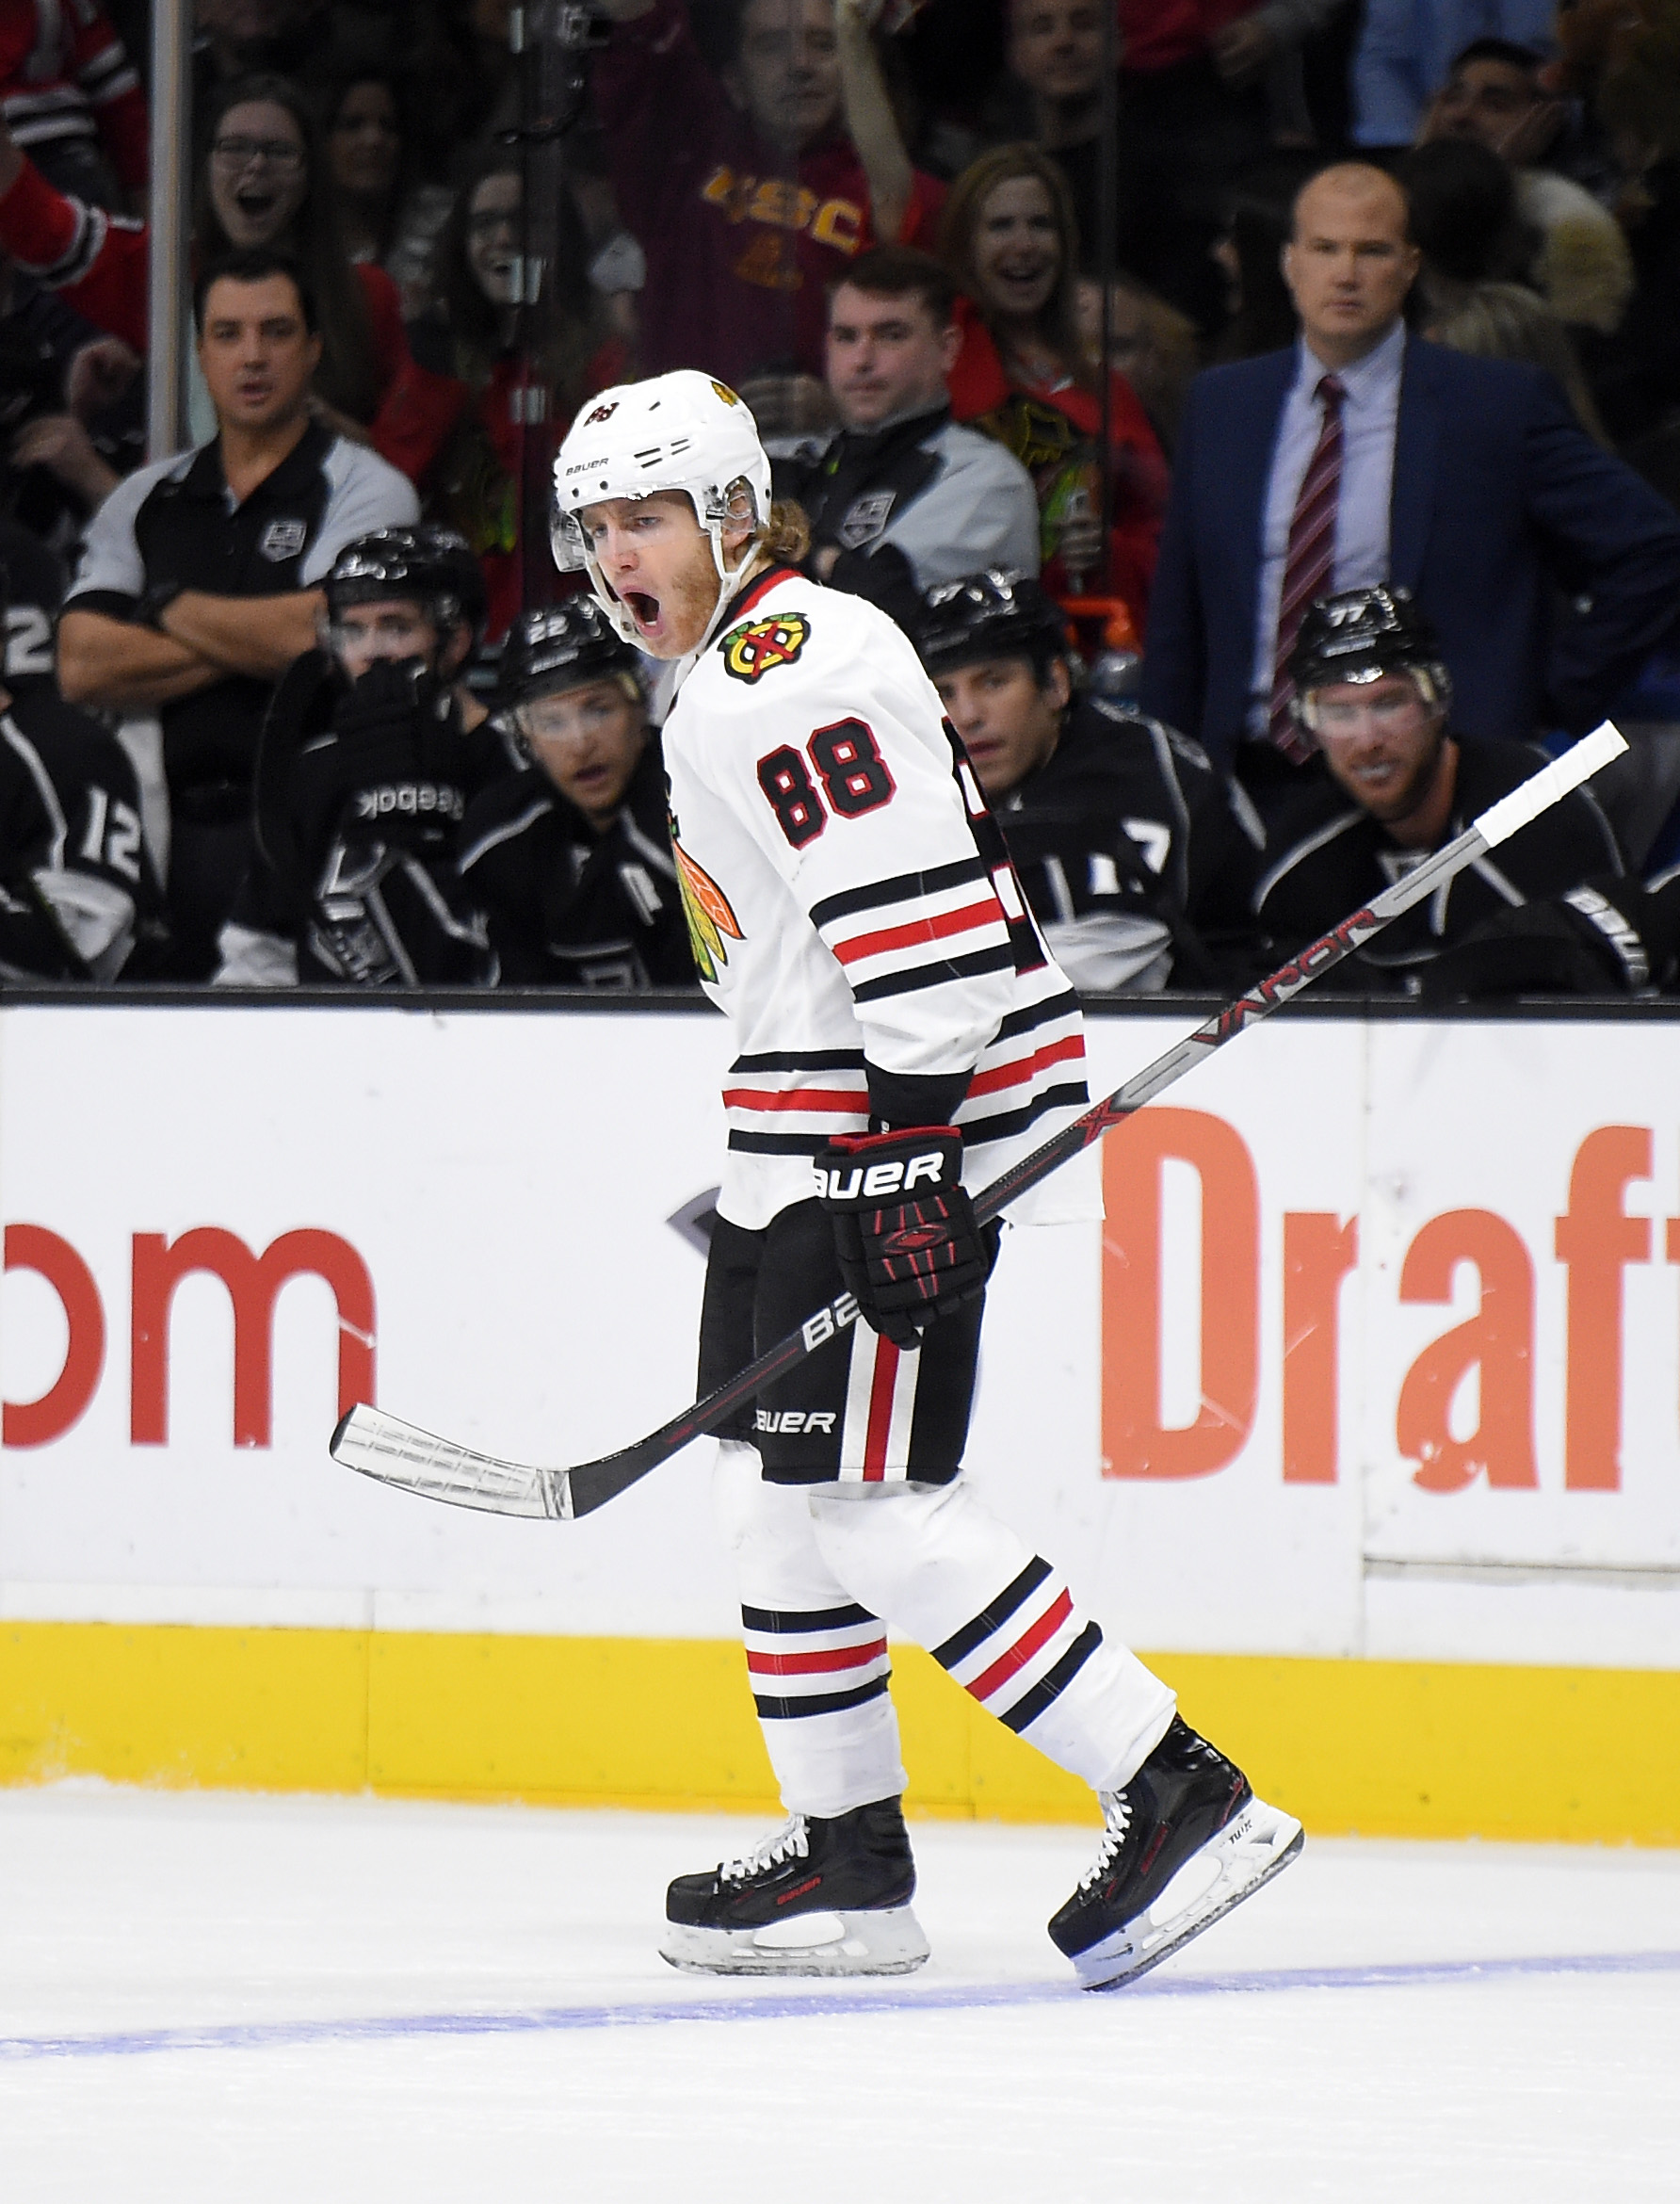 Chicago Blackhawks right wing Patrick Kane celebrates his goal during the first half of an NHL hockey game against the Los Angeles Kings, Saturday, Nov. 28, 2015, in Los Angeles. (AP Photo/Mark J. Terrill)